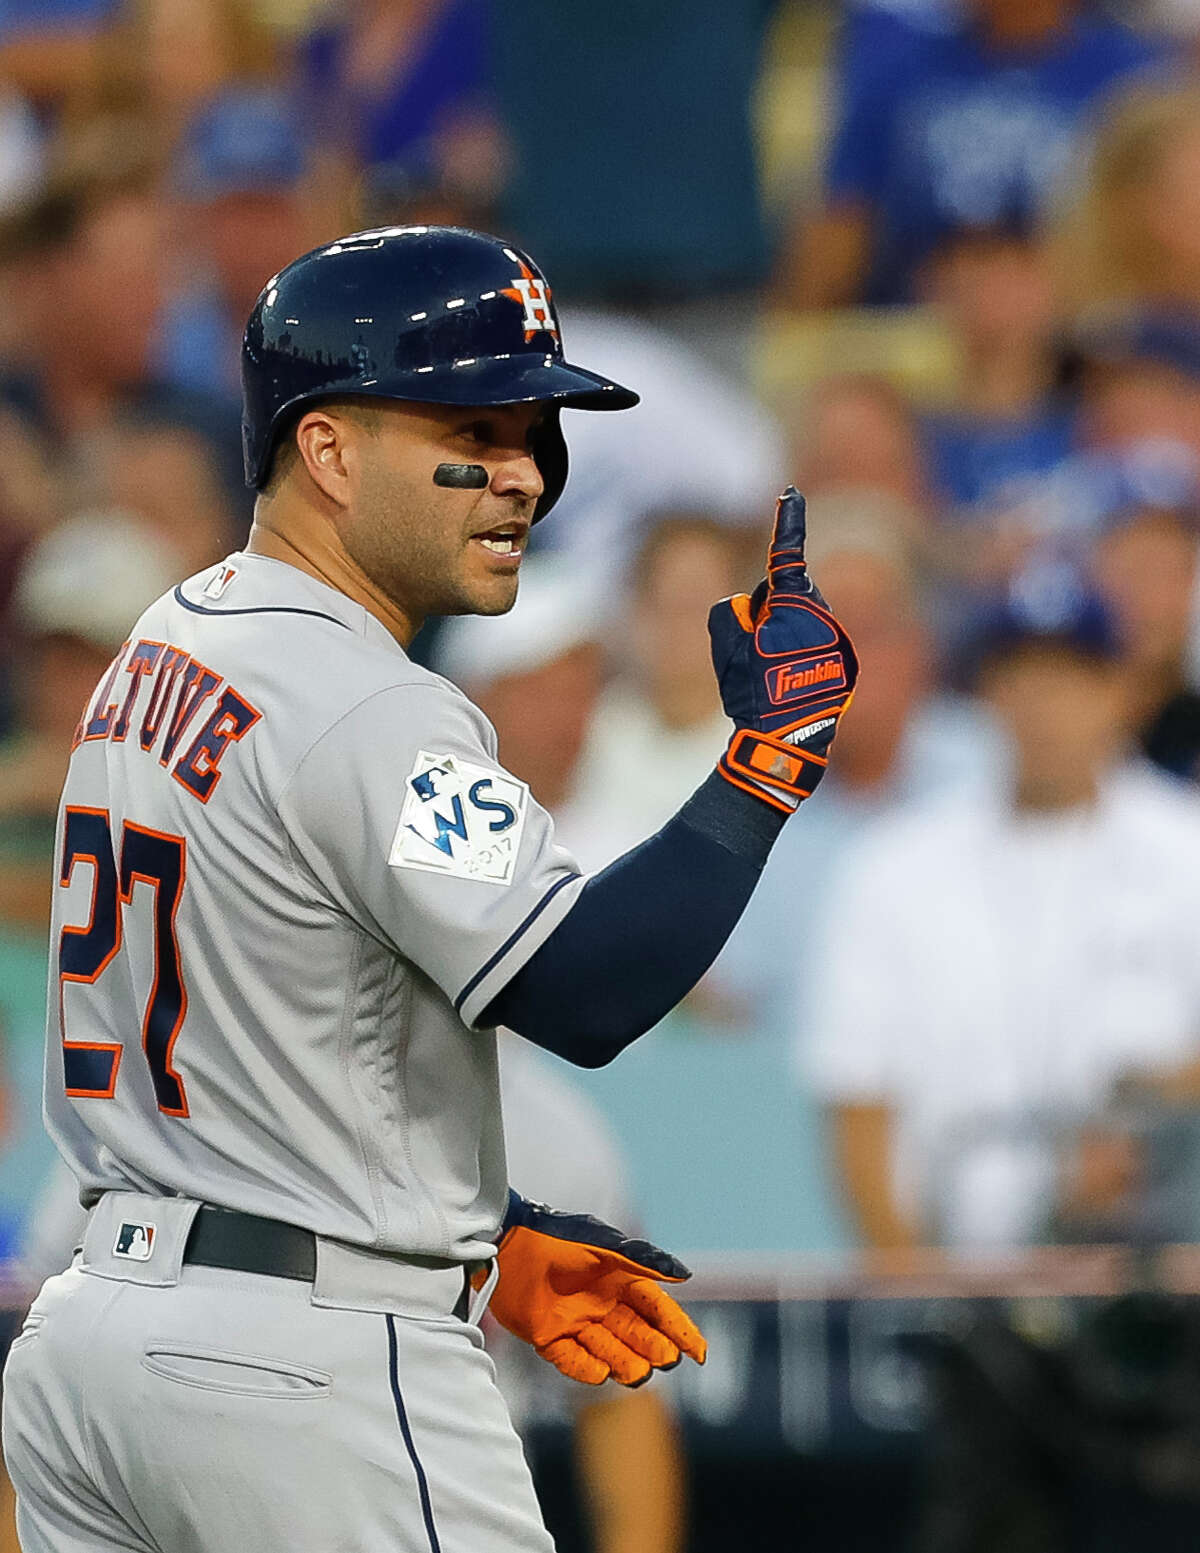 1. Altuve, who made his big-league debut in 2011, is the longest tenured Astros player.